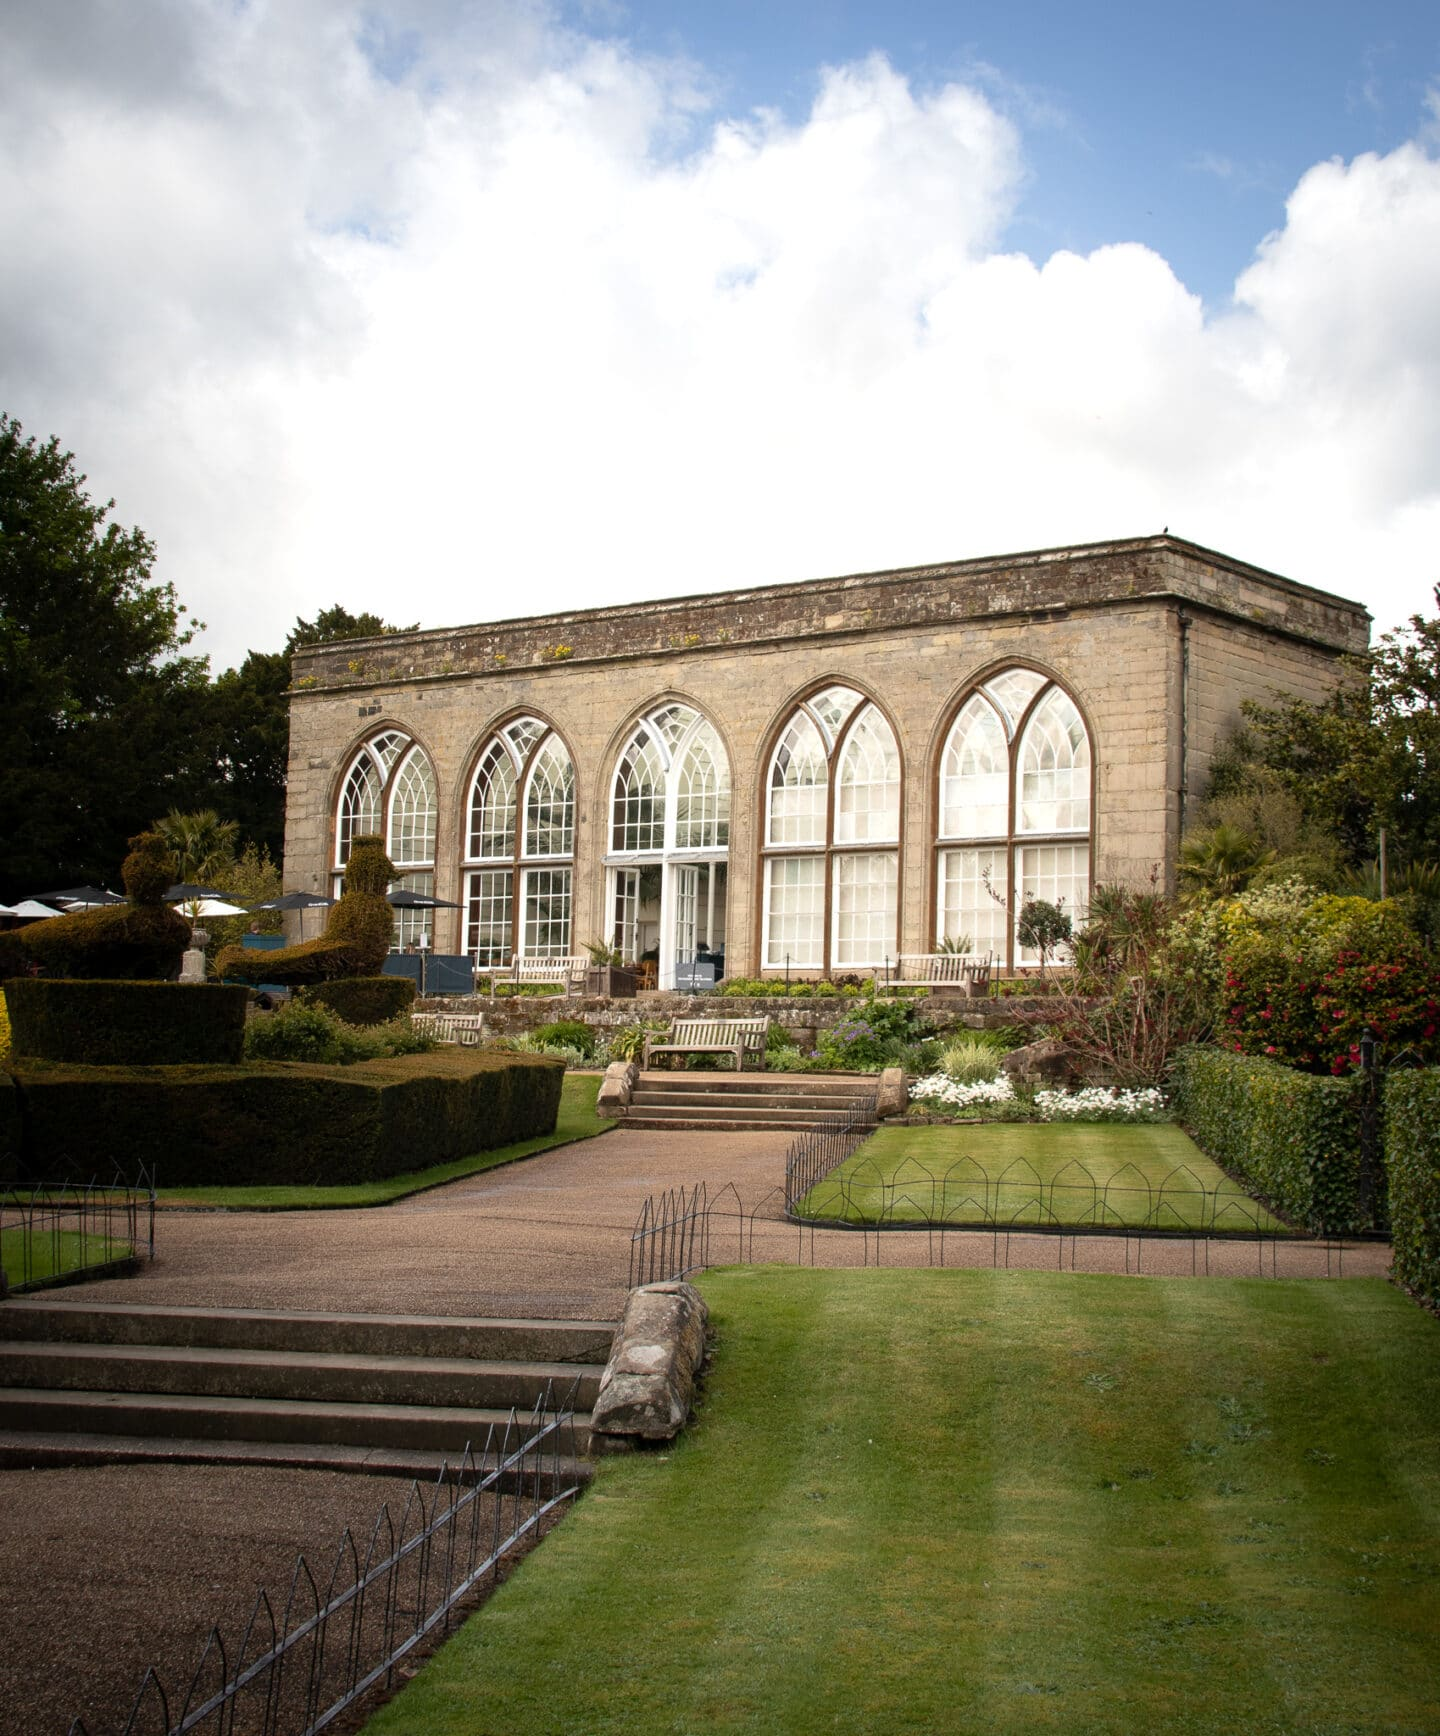 The conservatory is a square building with arched windows. The peacock gardens are in from of the conservatory with trimmed hedges and topiary birds.